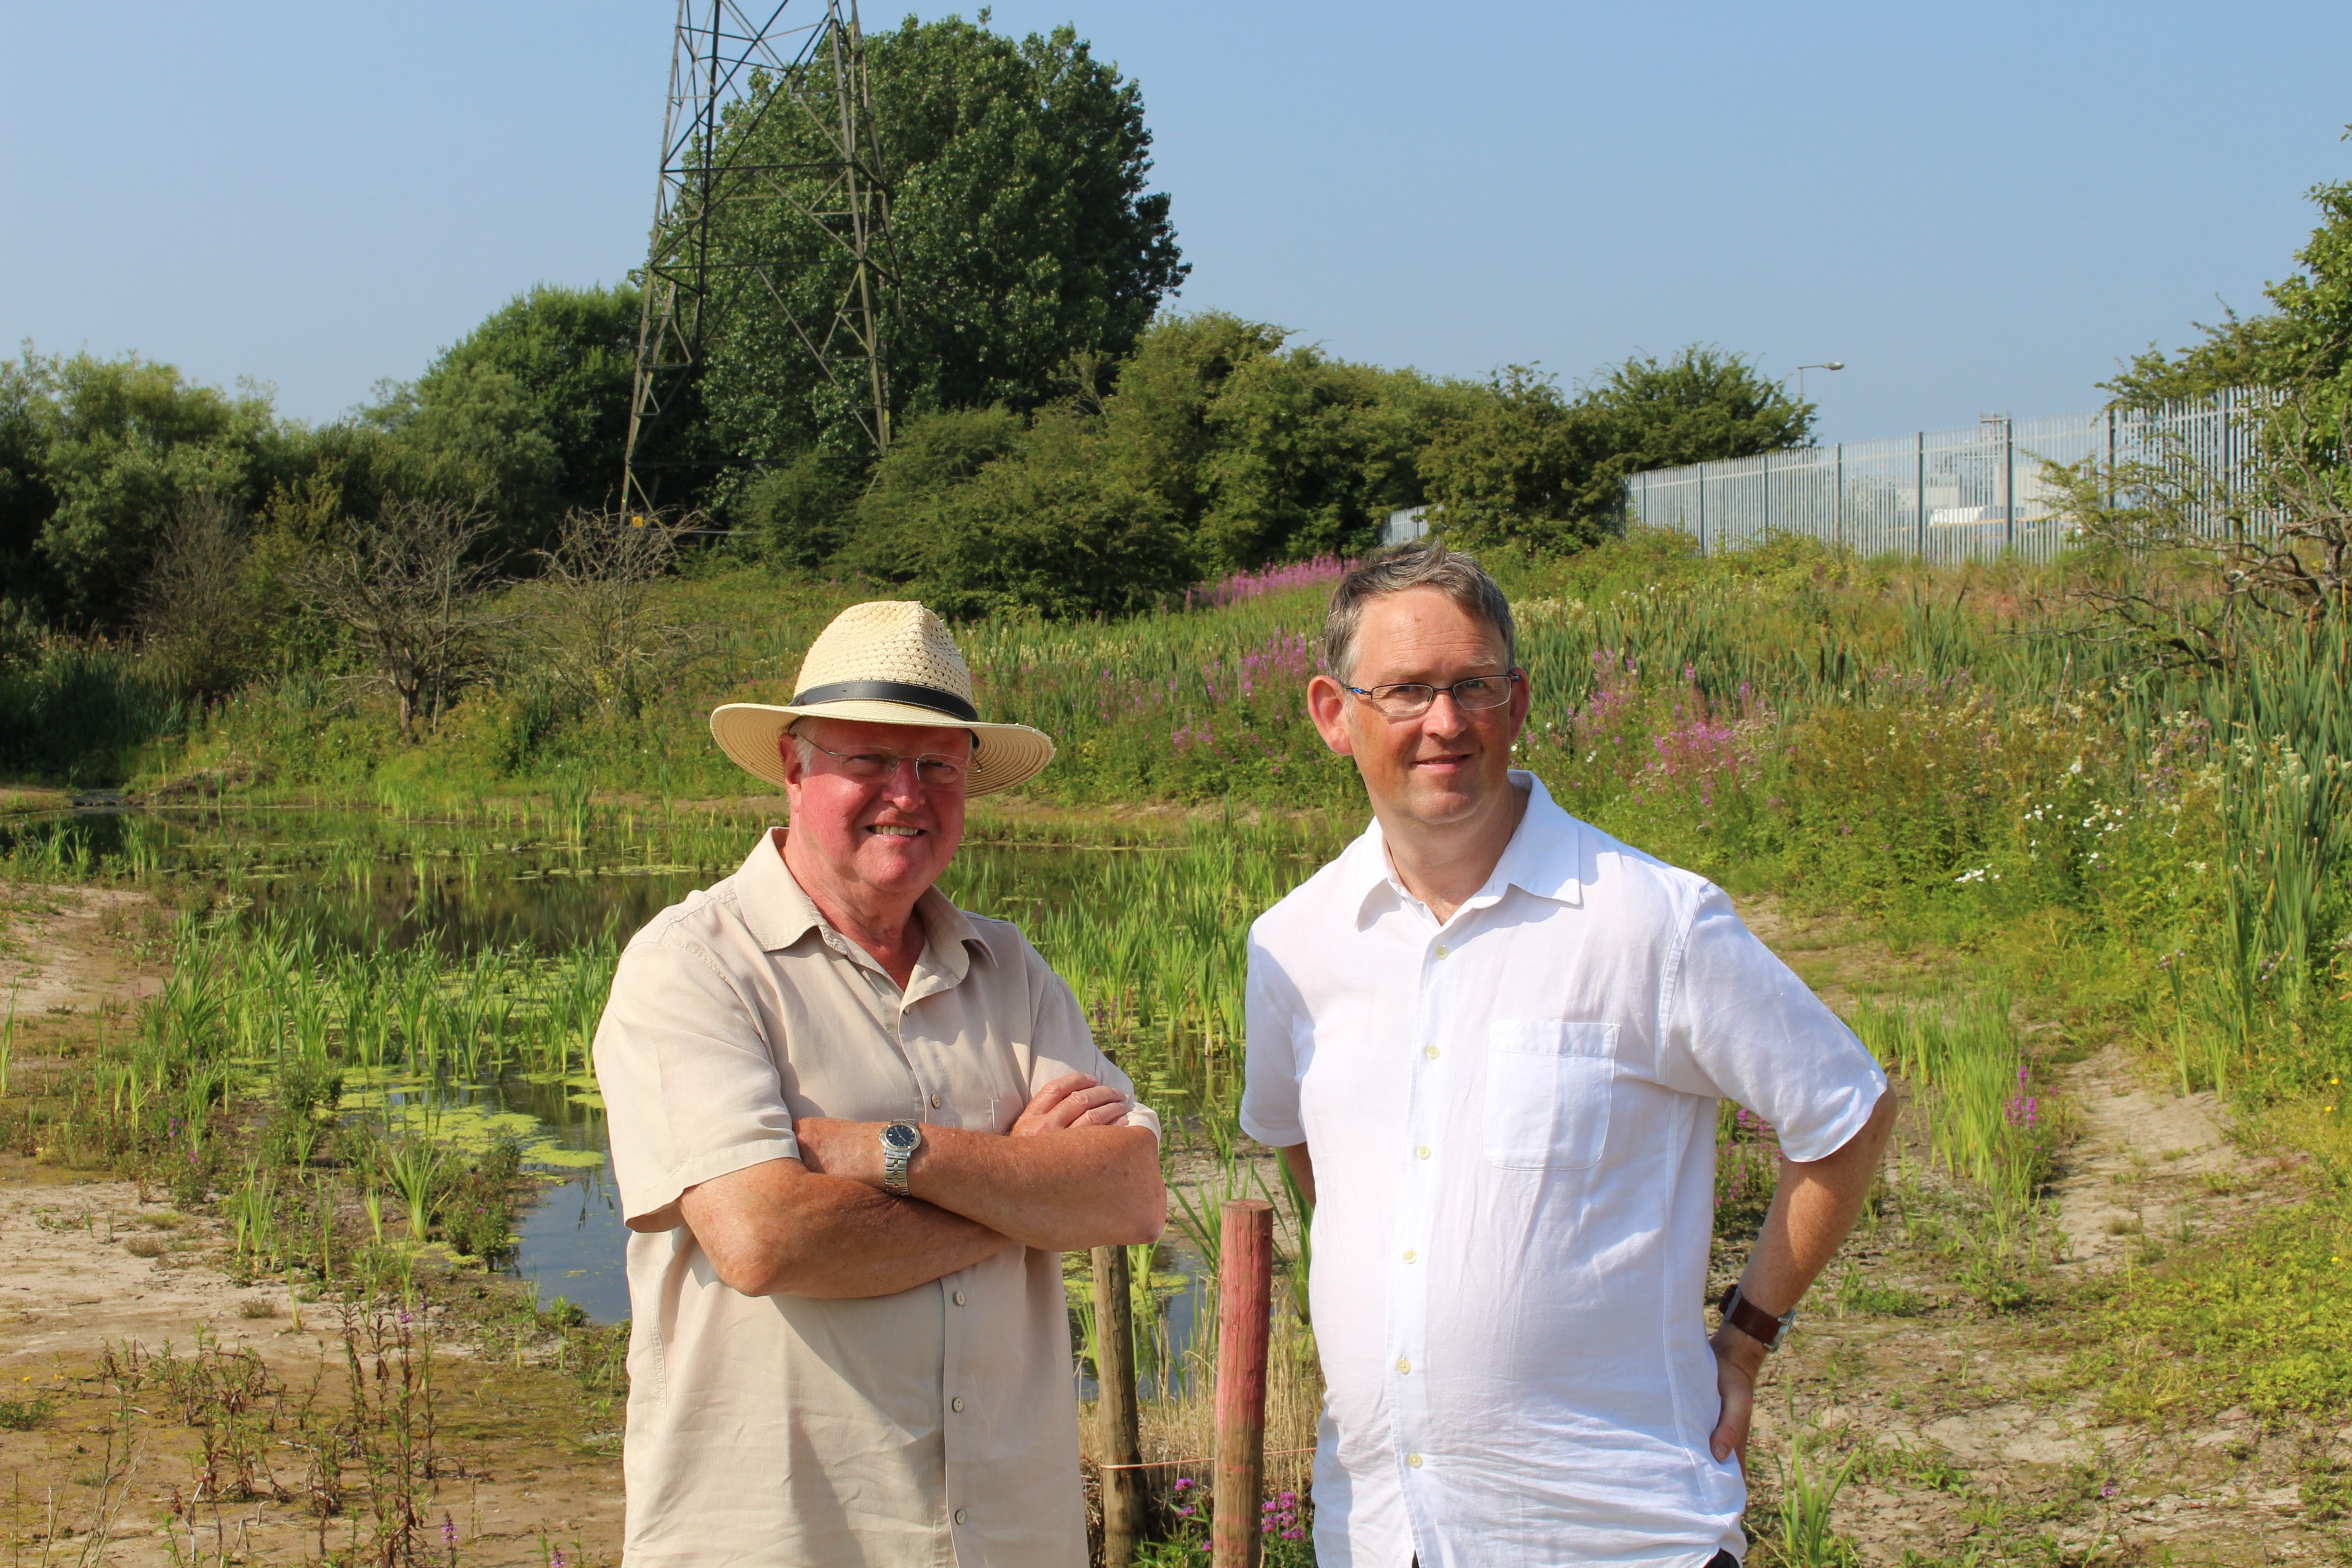 MP VISITS TWO WETLAND PROJECTS HELPING TO PREVENT FLOODING IN THORNTON